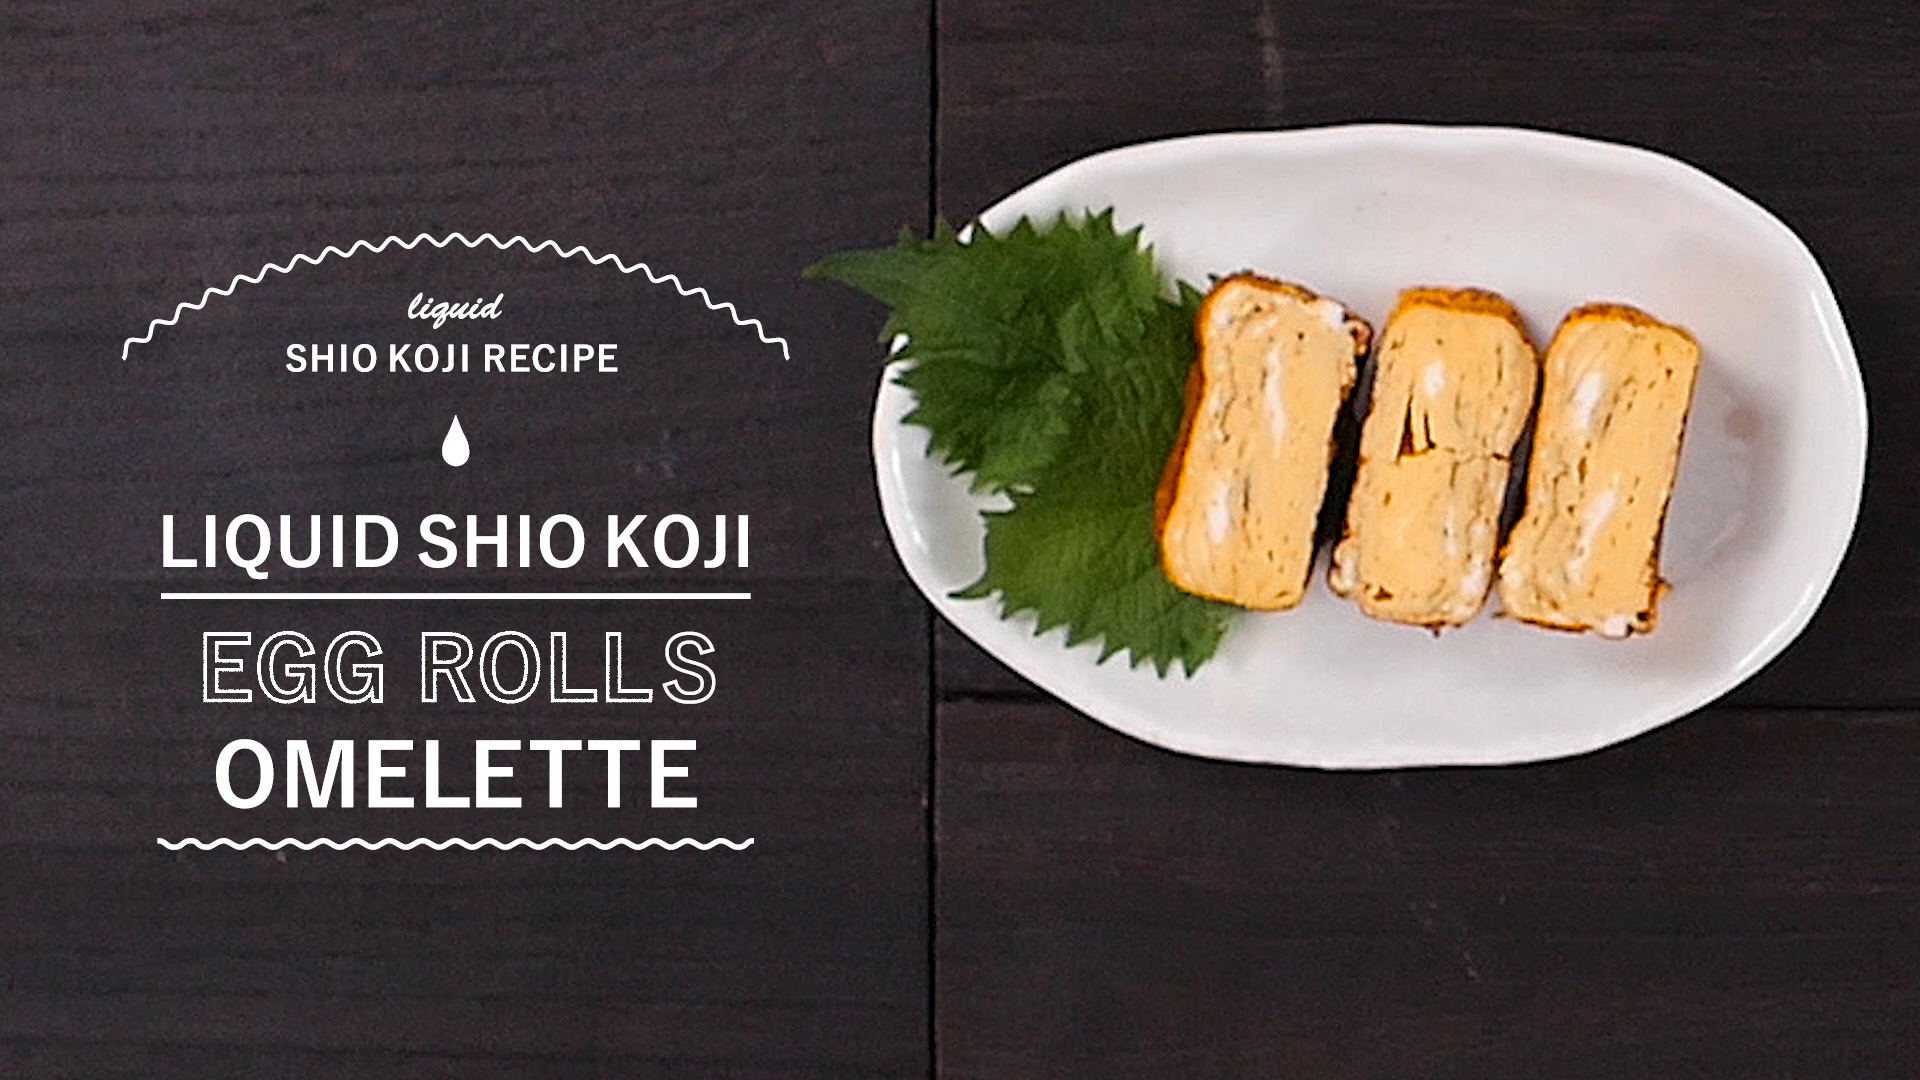 【LIQUID SHIO KOJI RECIPE EGG ROLL OMELETTE】 Use Liquid Shio Koji = Soft and Fluffy!